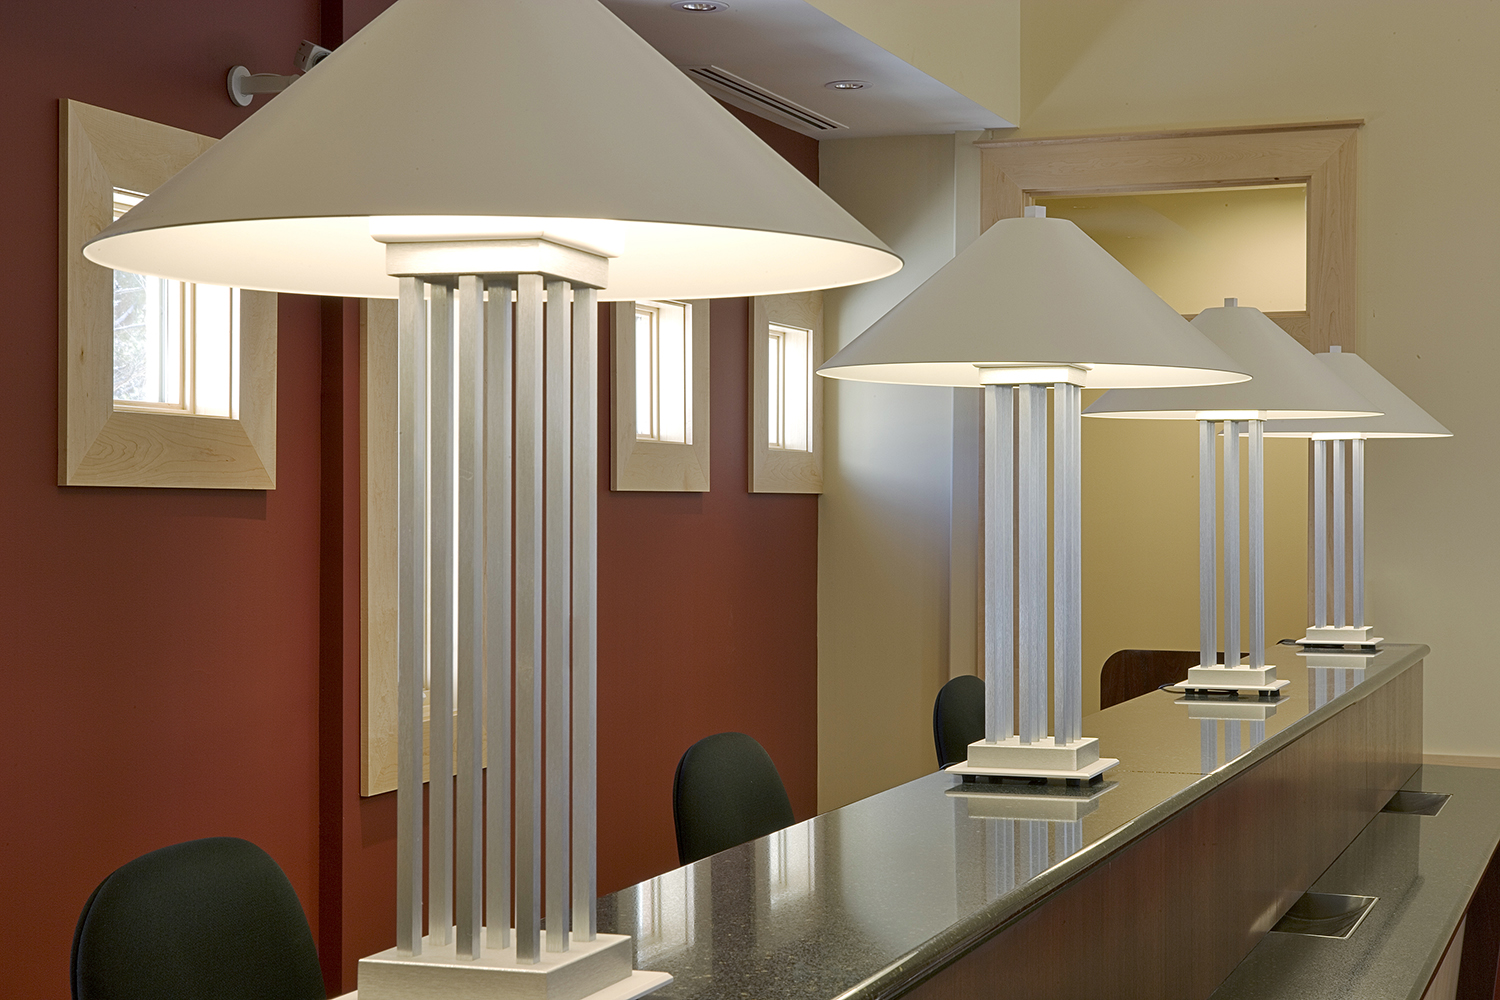 South Bay portable lamps provide distinguished architectural lighting on a reception counter.